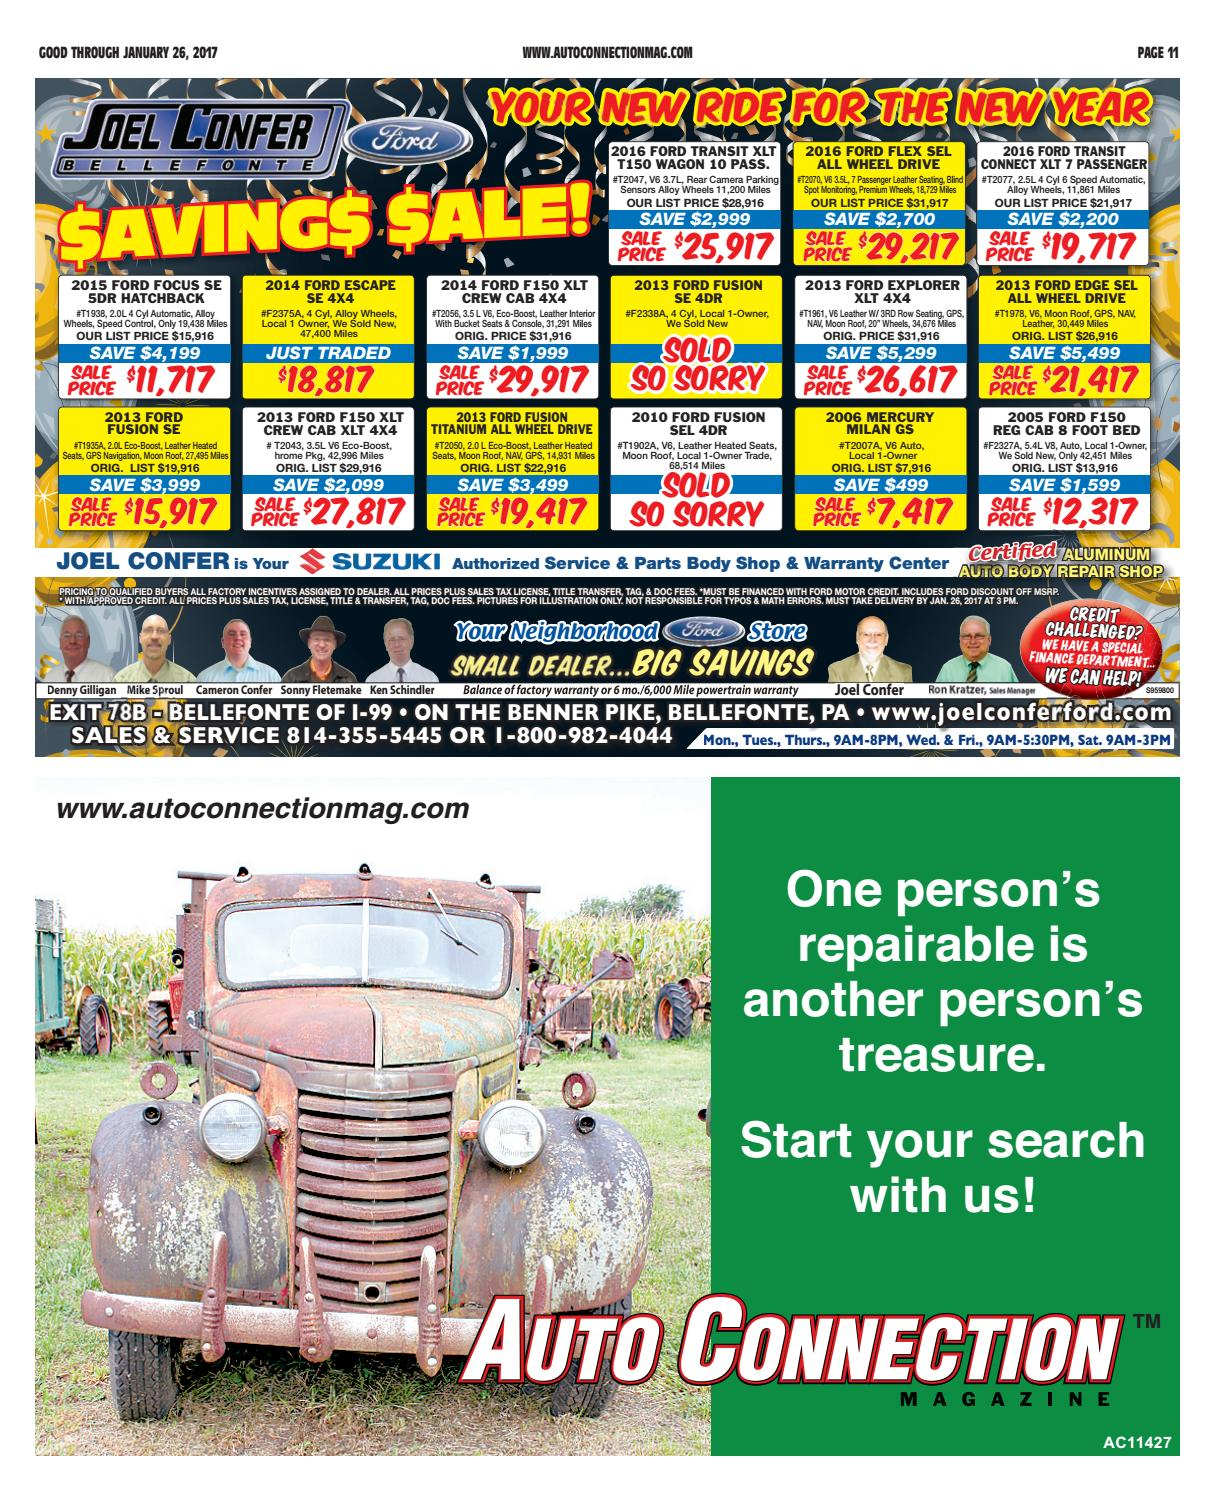 01-26-17 Auto Connection Magazine by Auto Connection